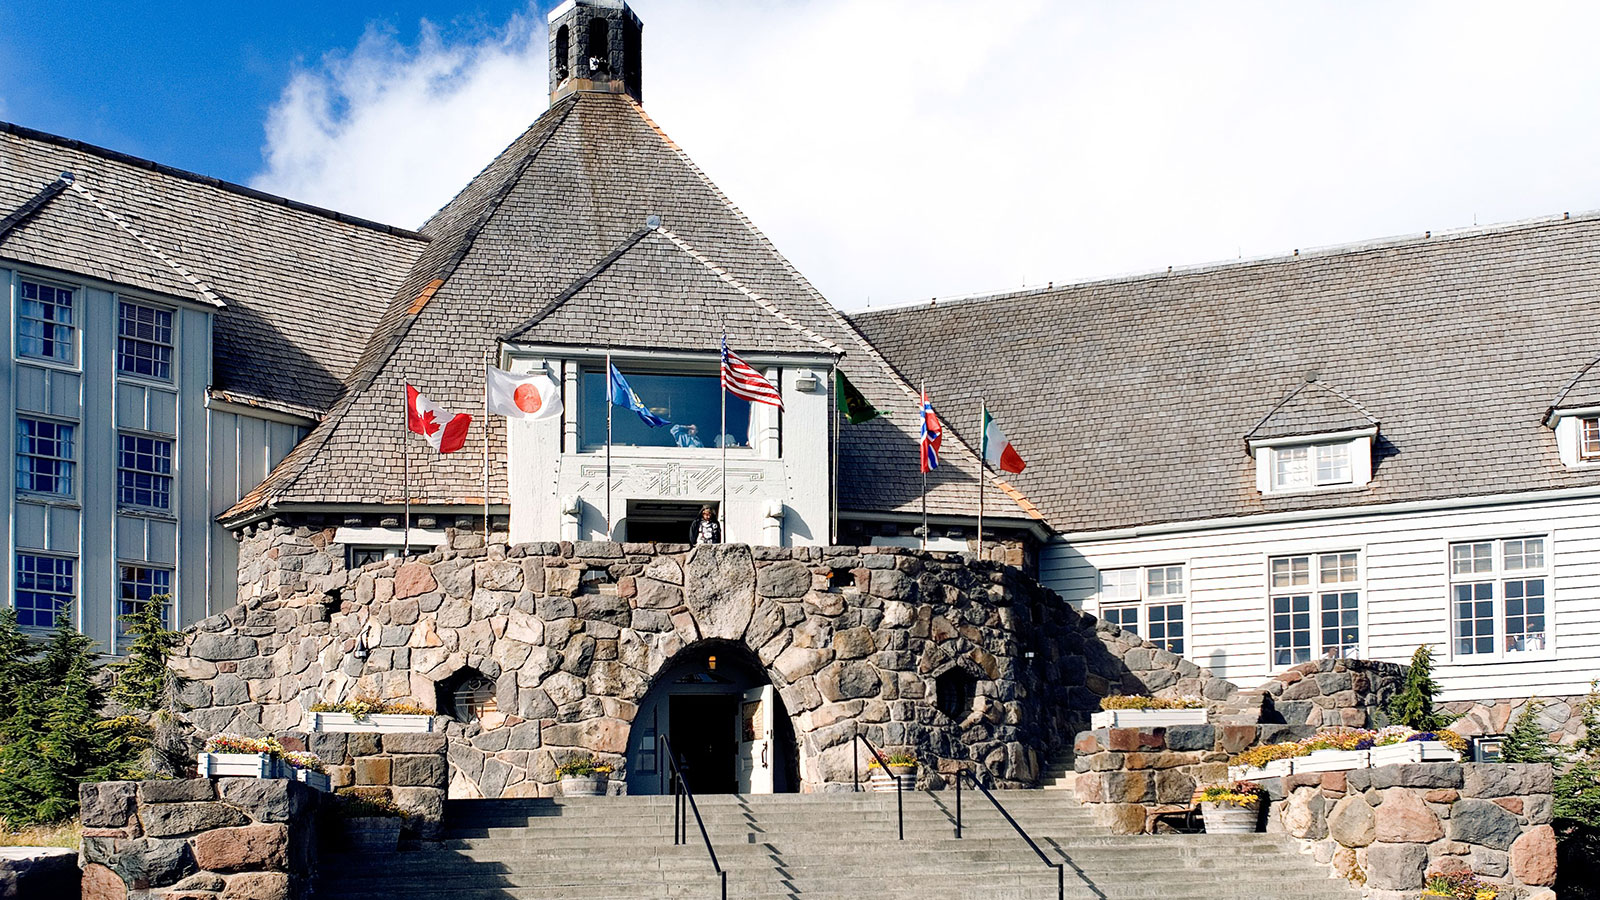 Image of hotel exterior Timberline Lodge, 1937, Member of Historic Hotels of America, in Timberline, Oregon, Overview